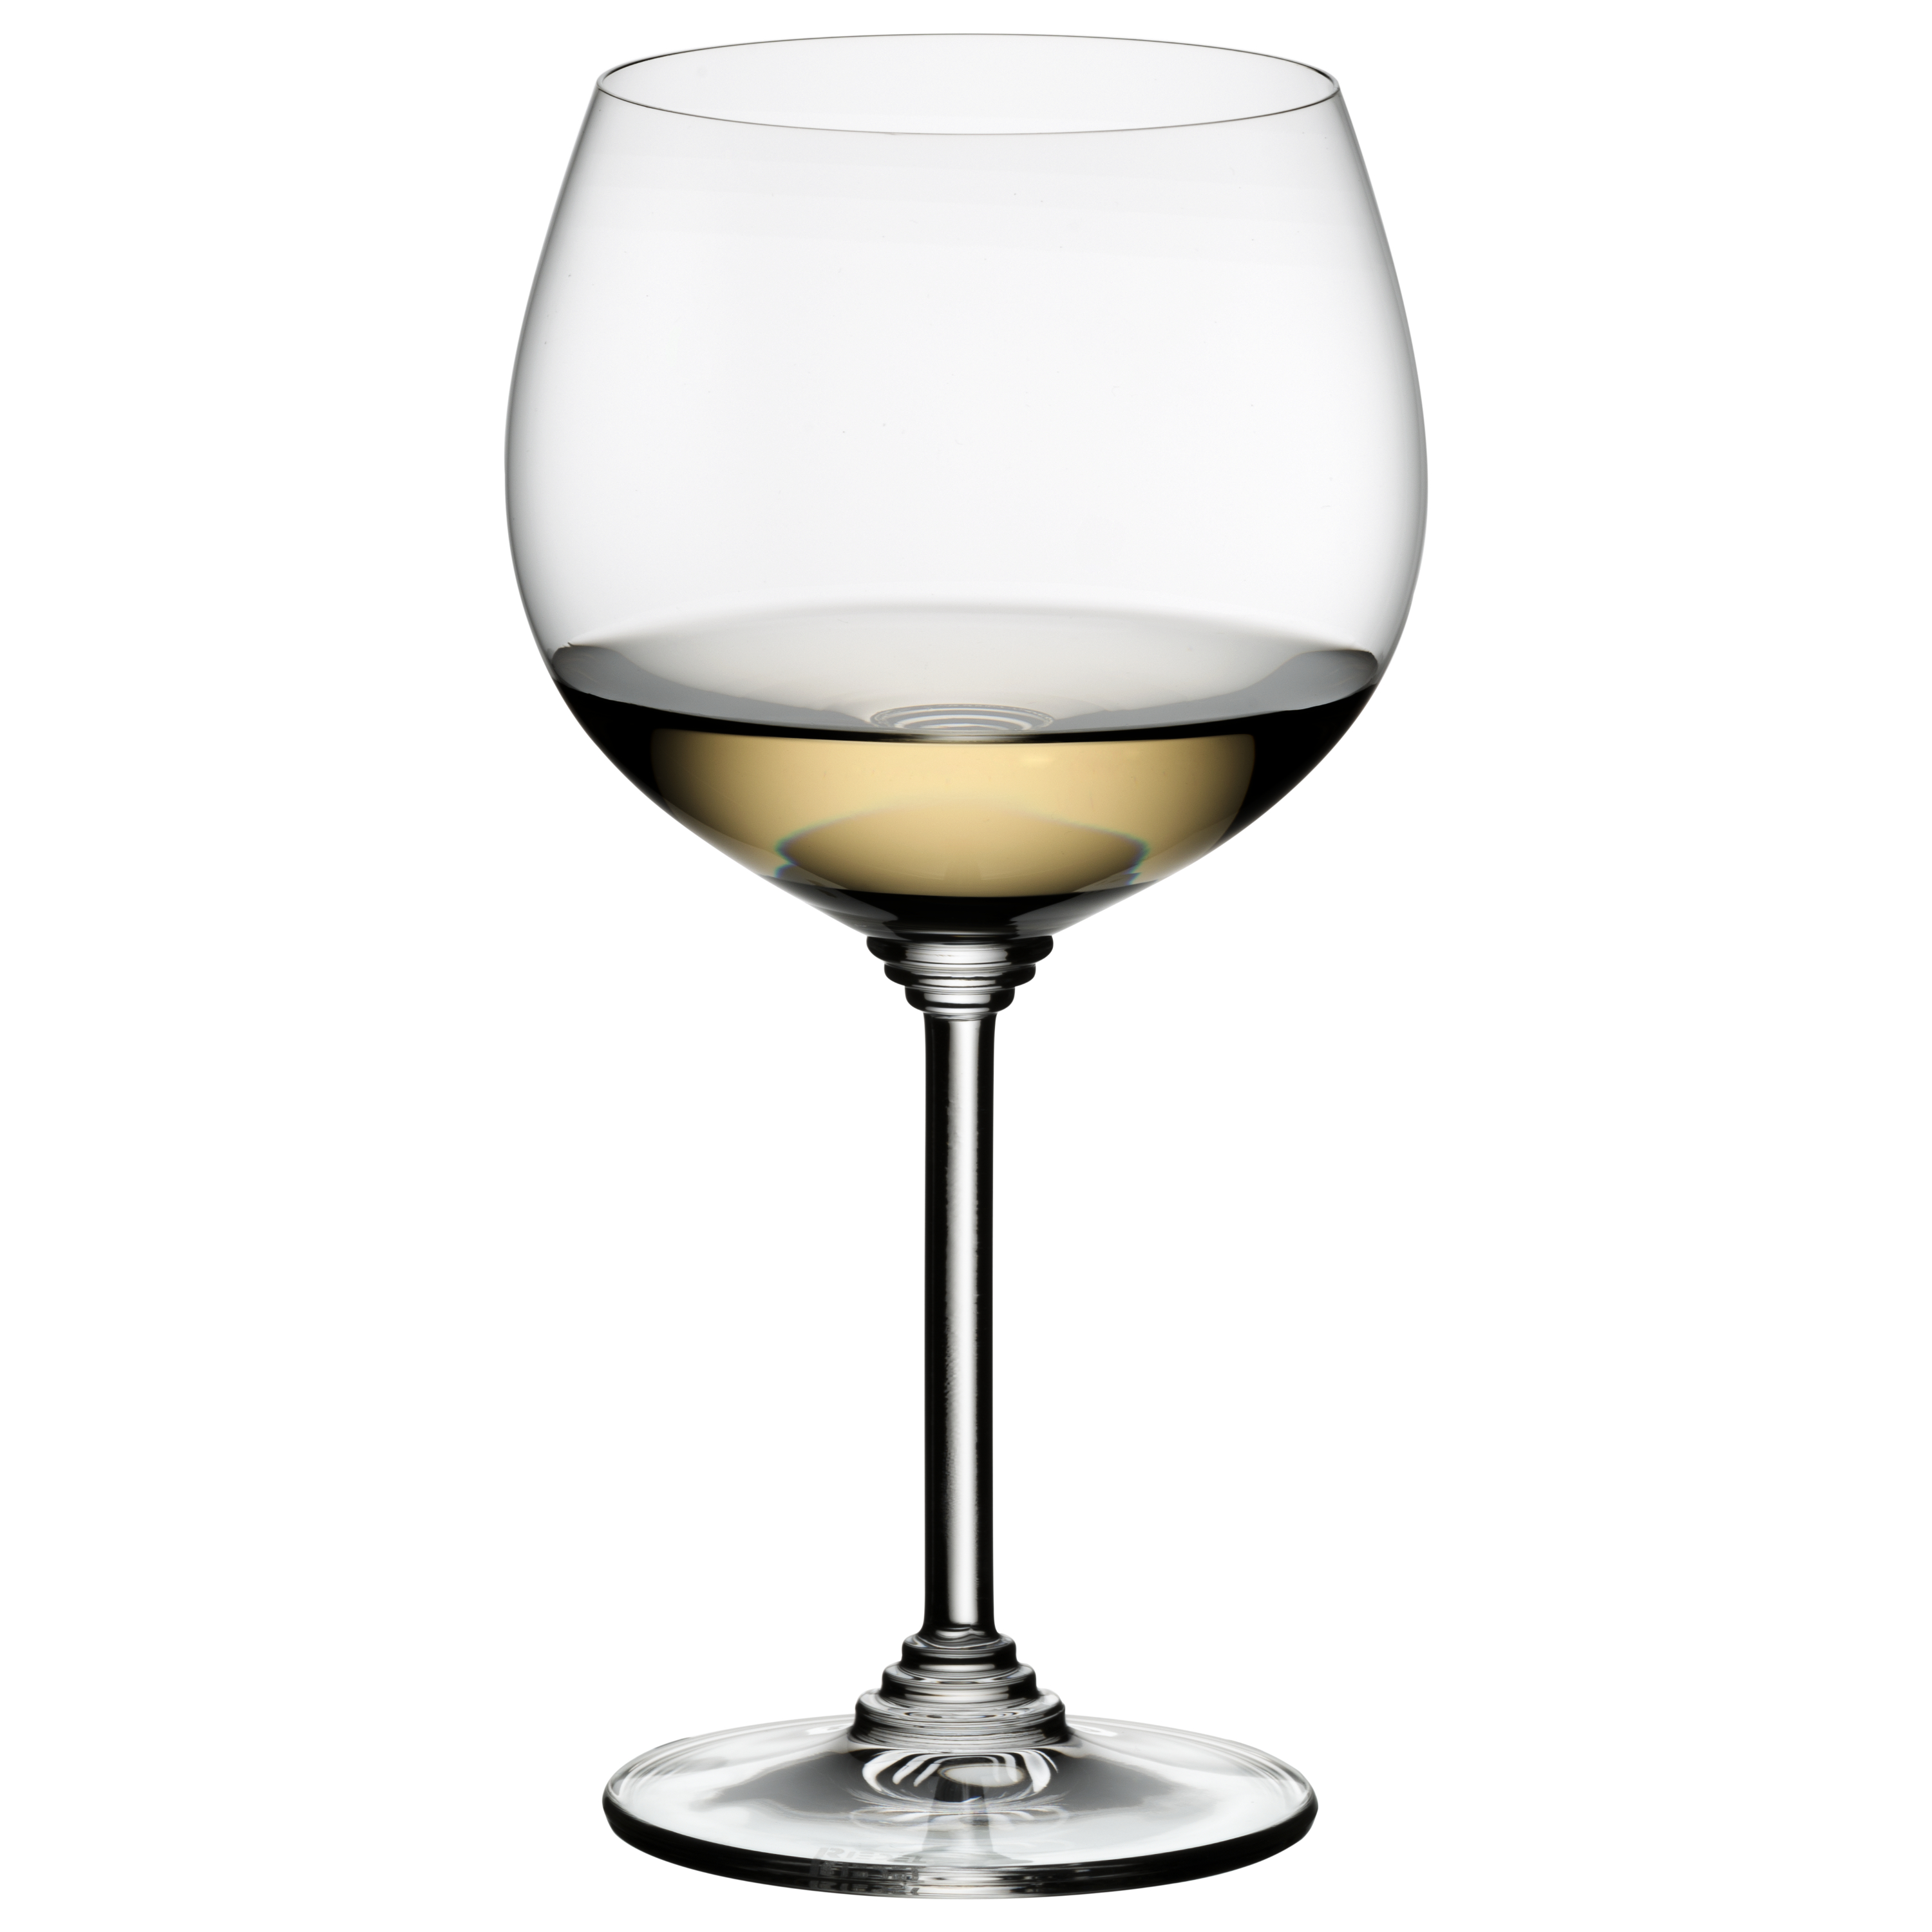 Riedel Wine Series Crystal Montrachet Chardonnay Wine Glass, Set of 2